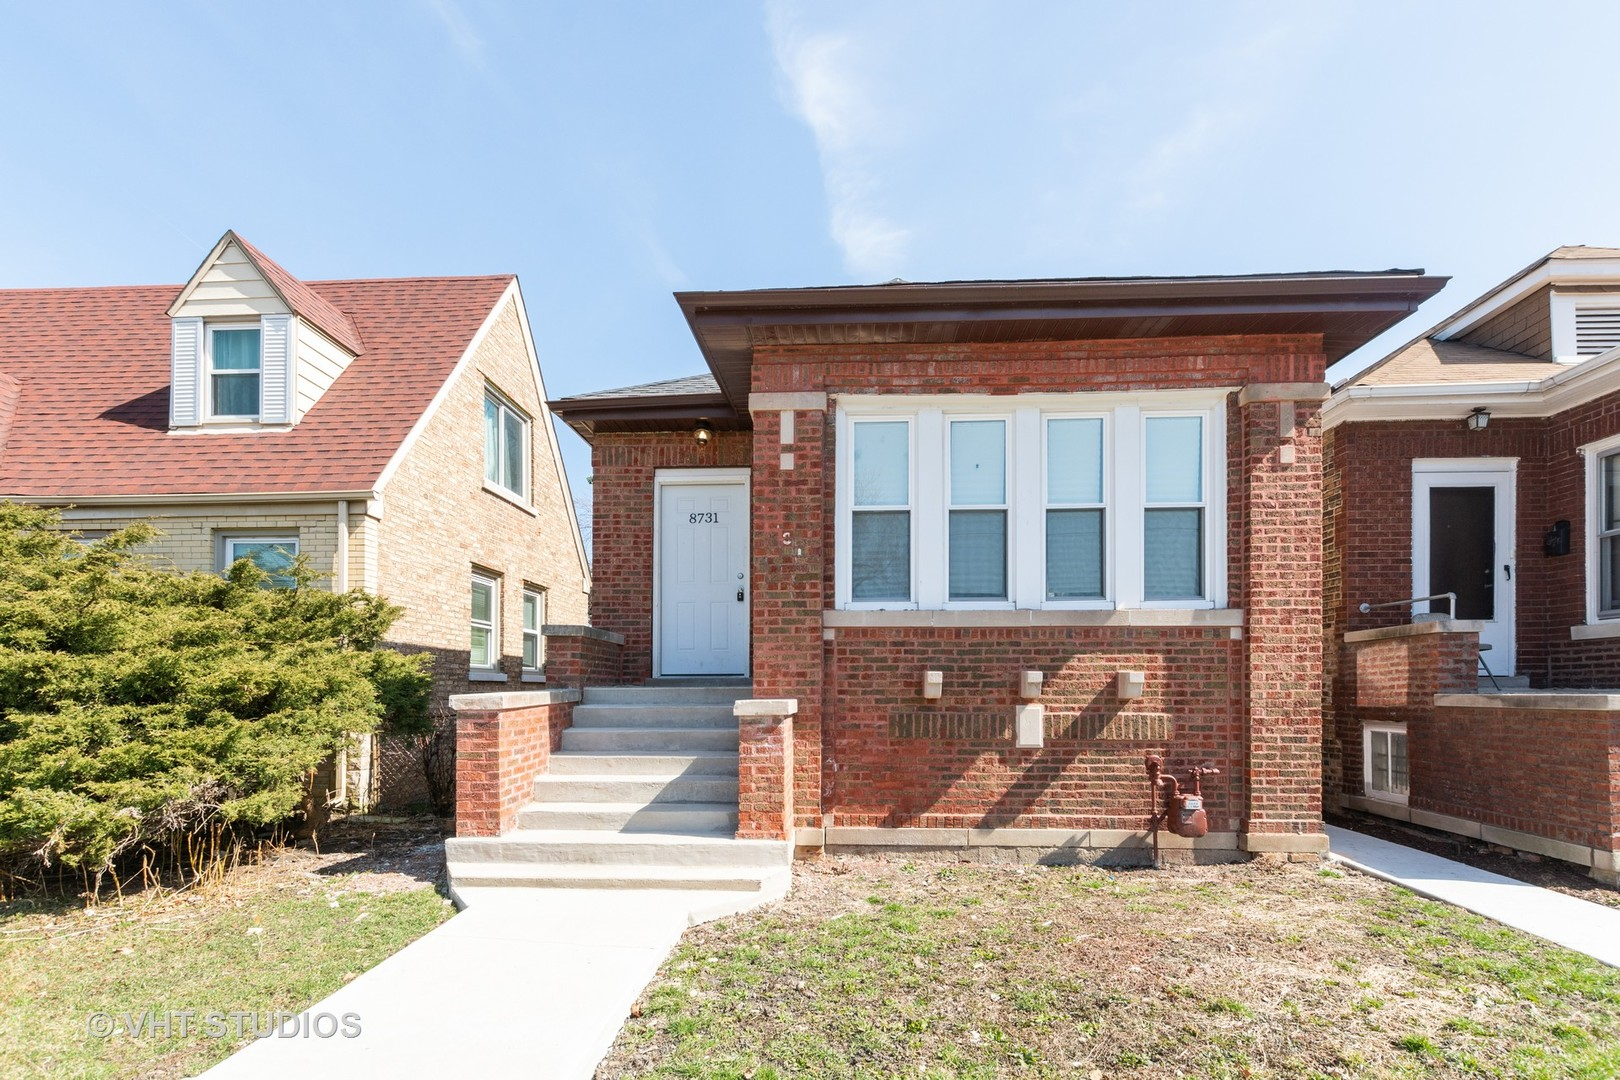 8731 S Honore Exterior Photo